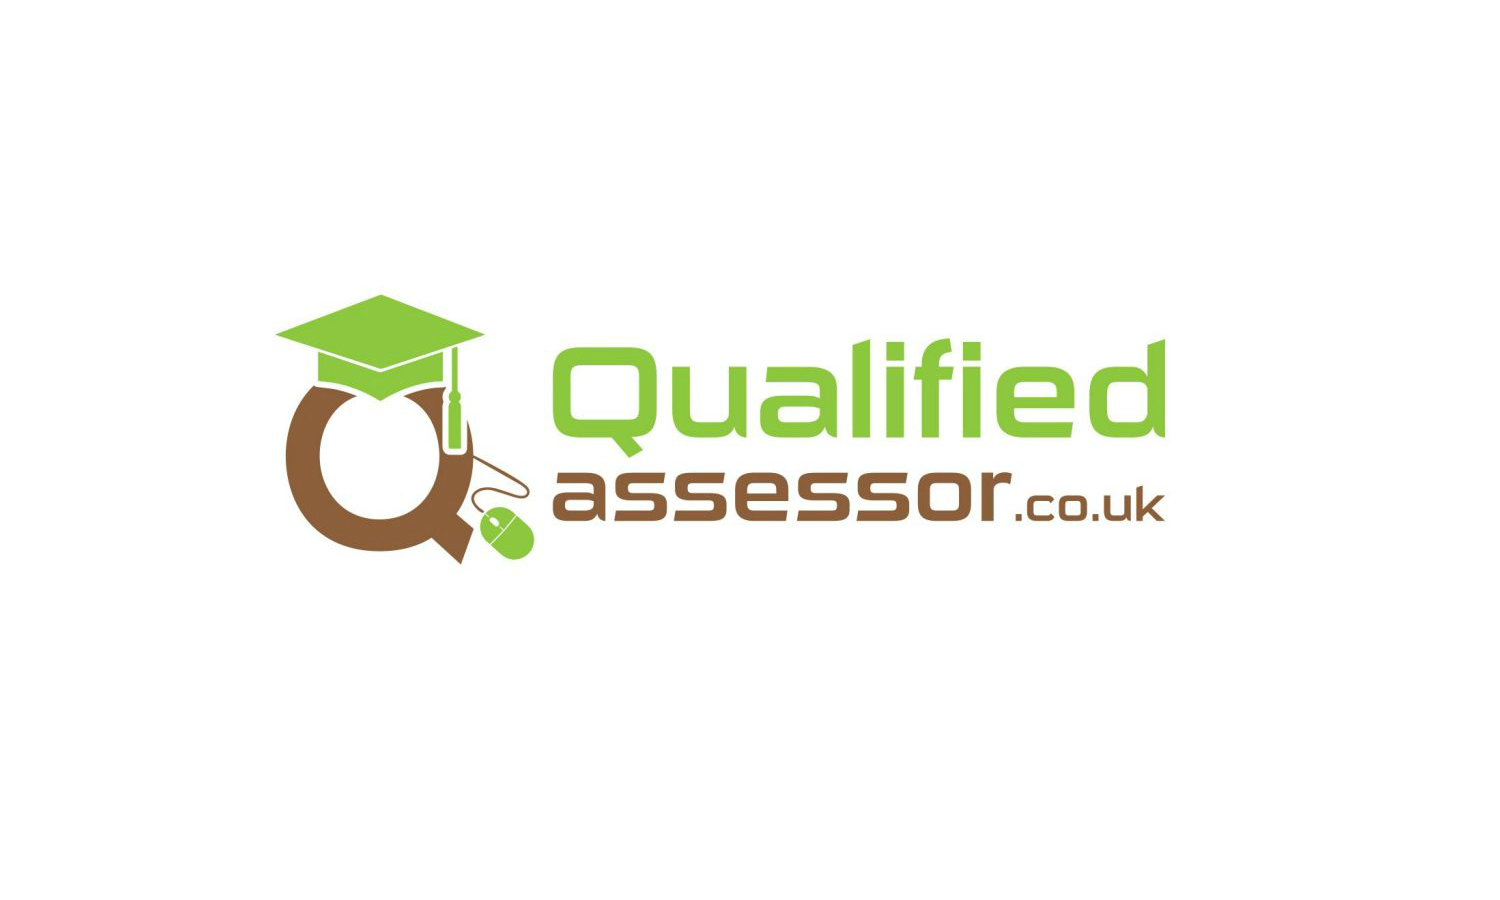 www.qualifiedassessor.co.uk